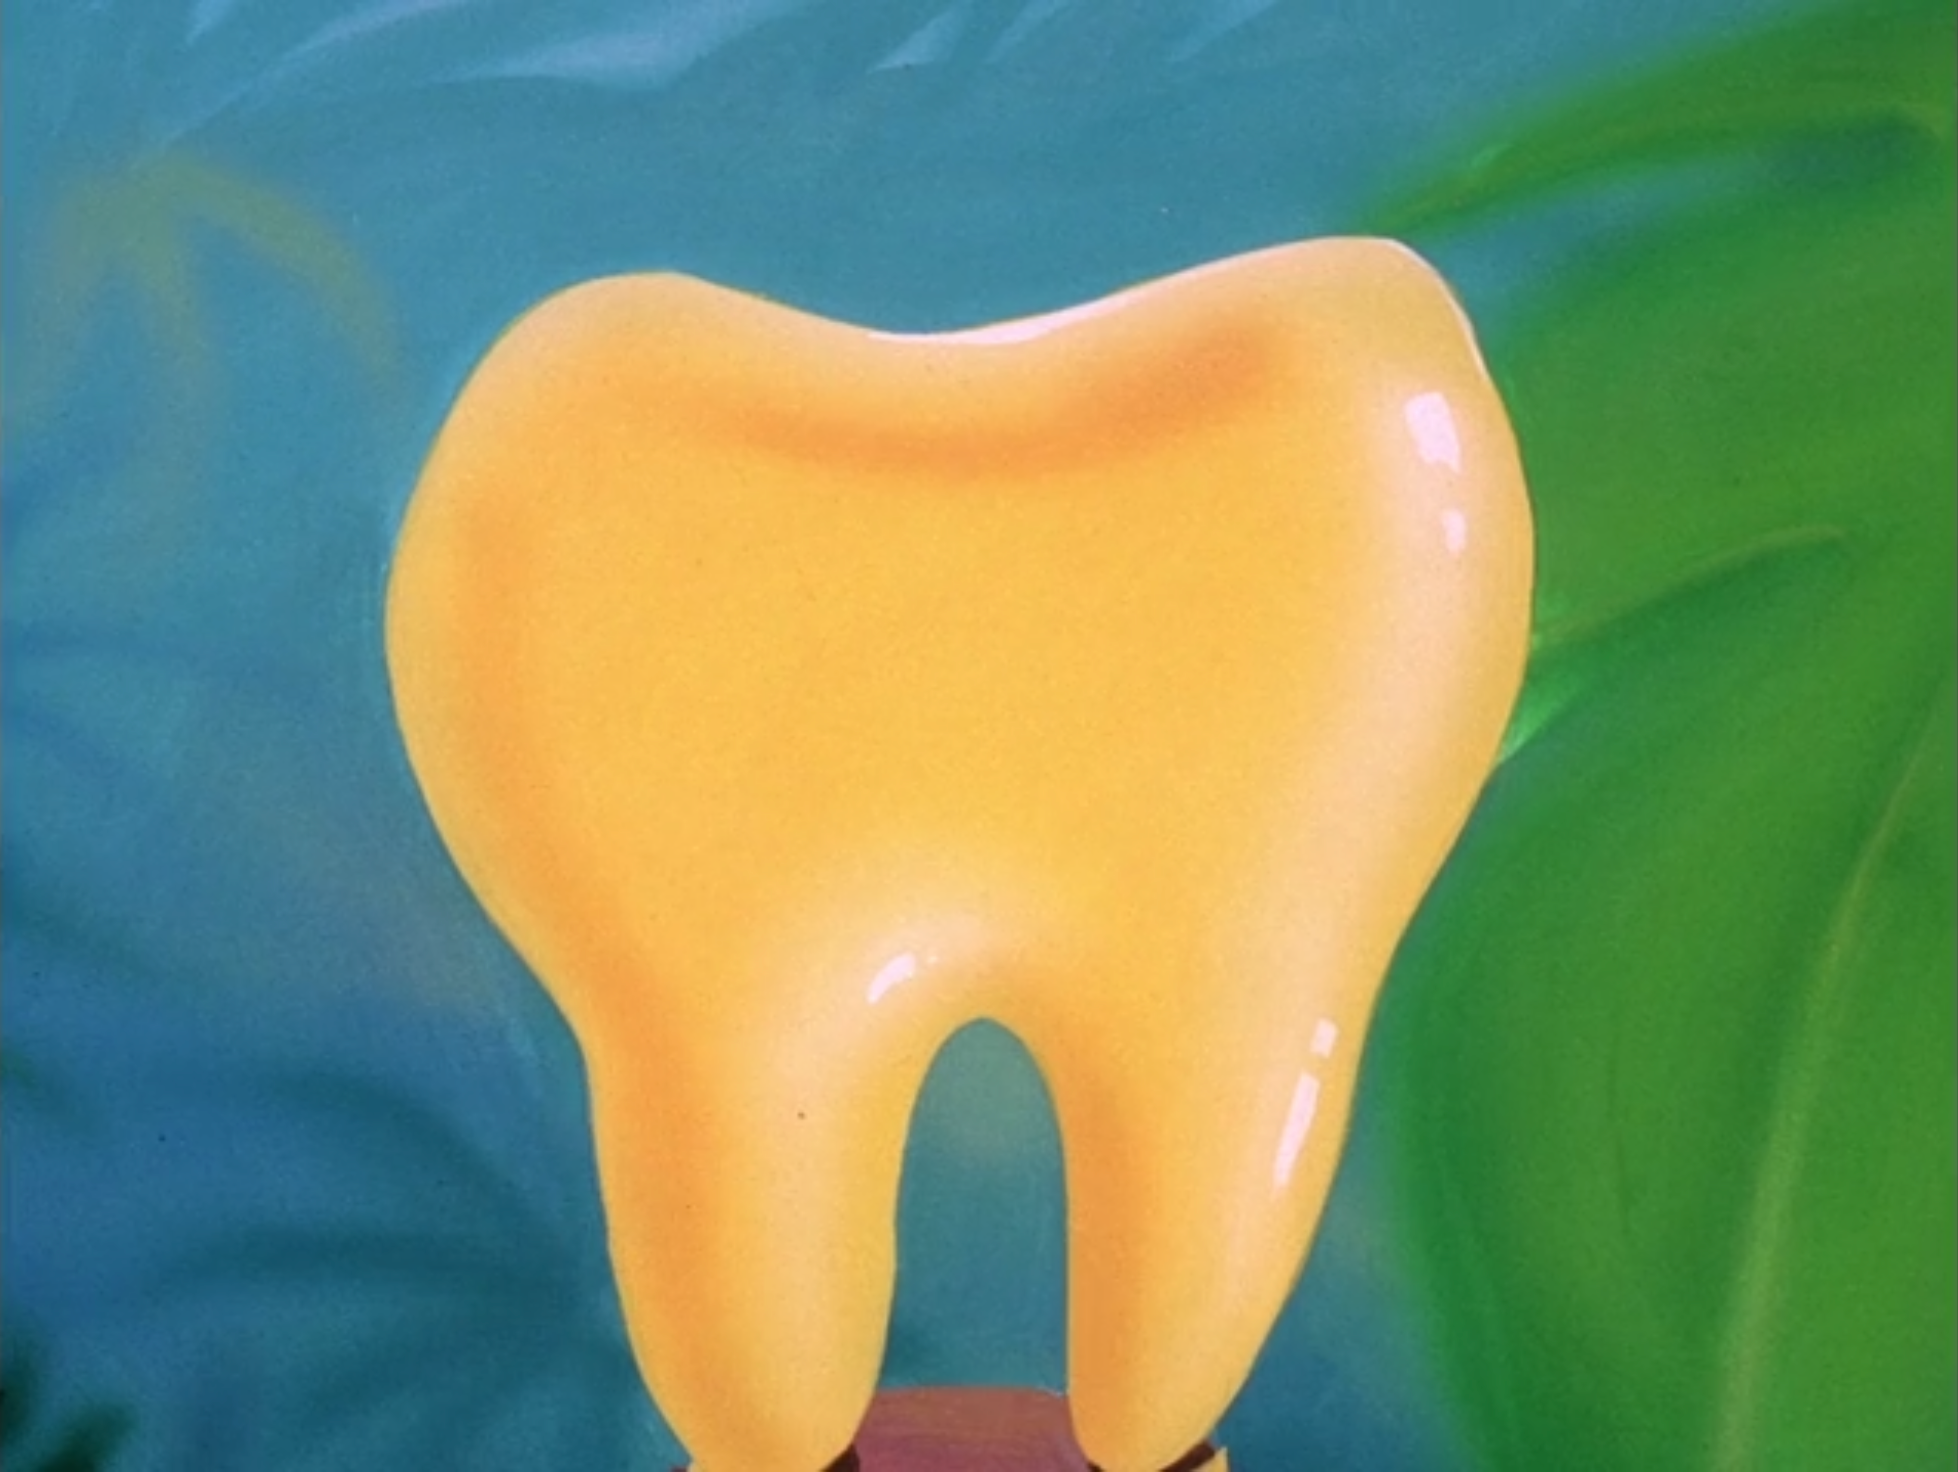 Gold tooth